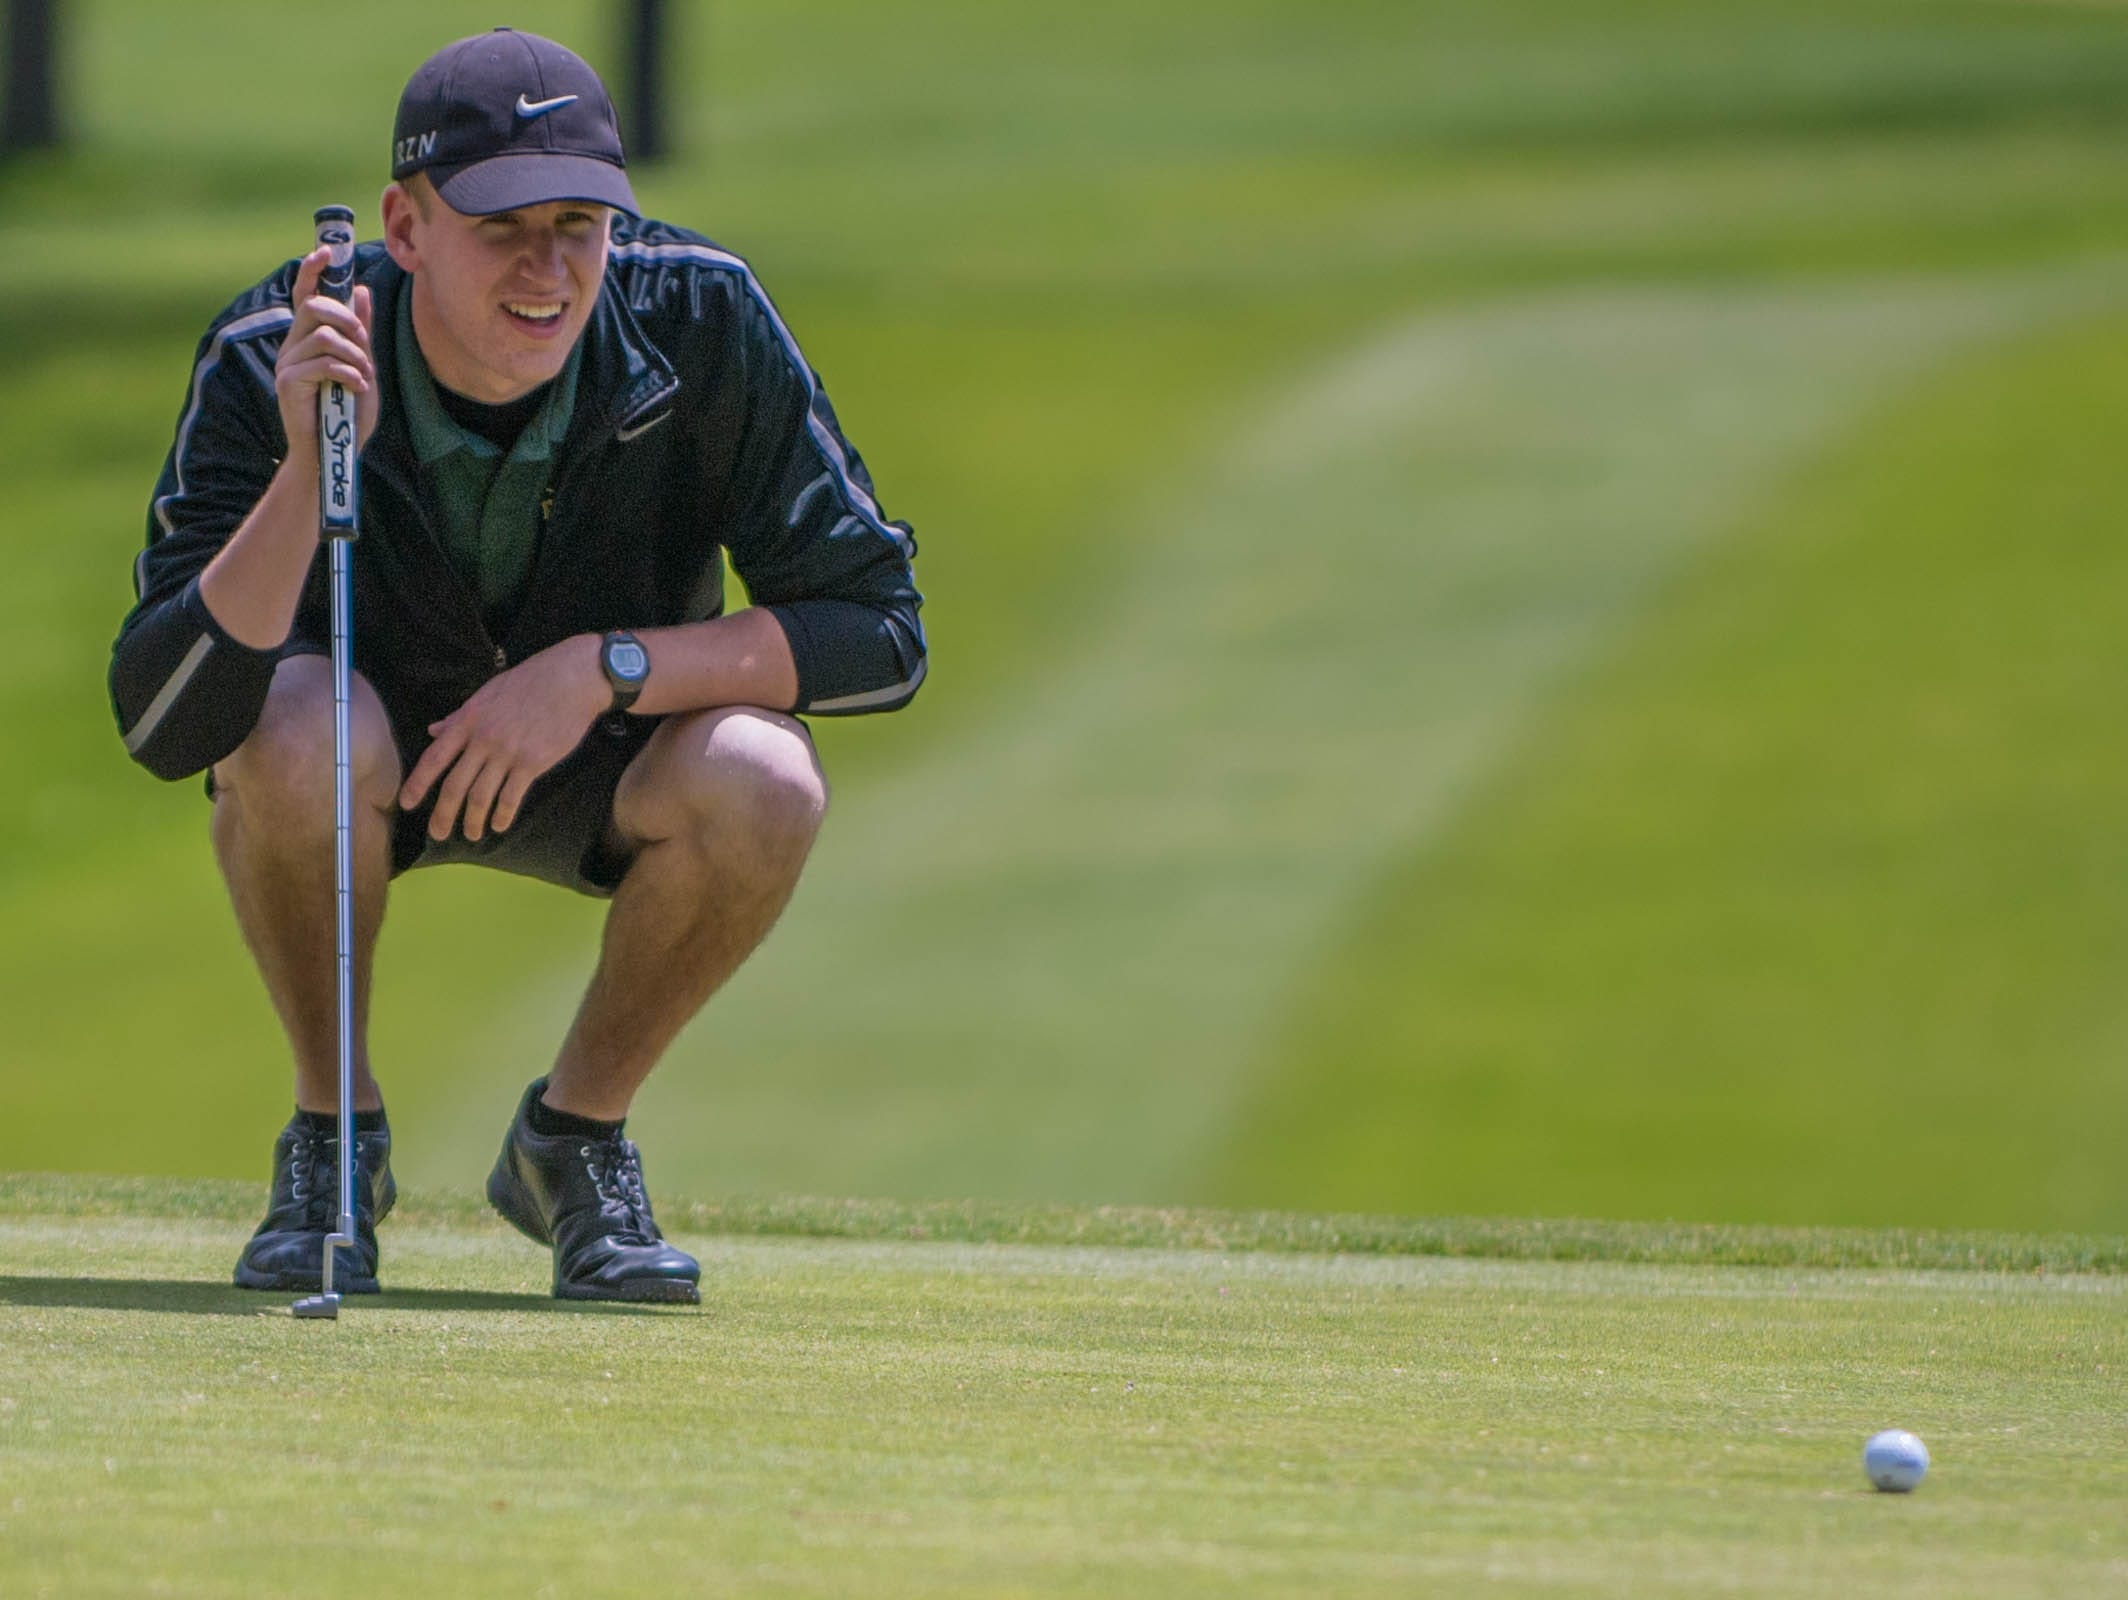 Pennfield senior Chase Williamson reads the green during All City High School Golf at Riverside Golf Club on Friday.